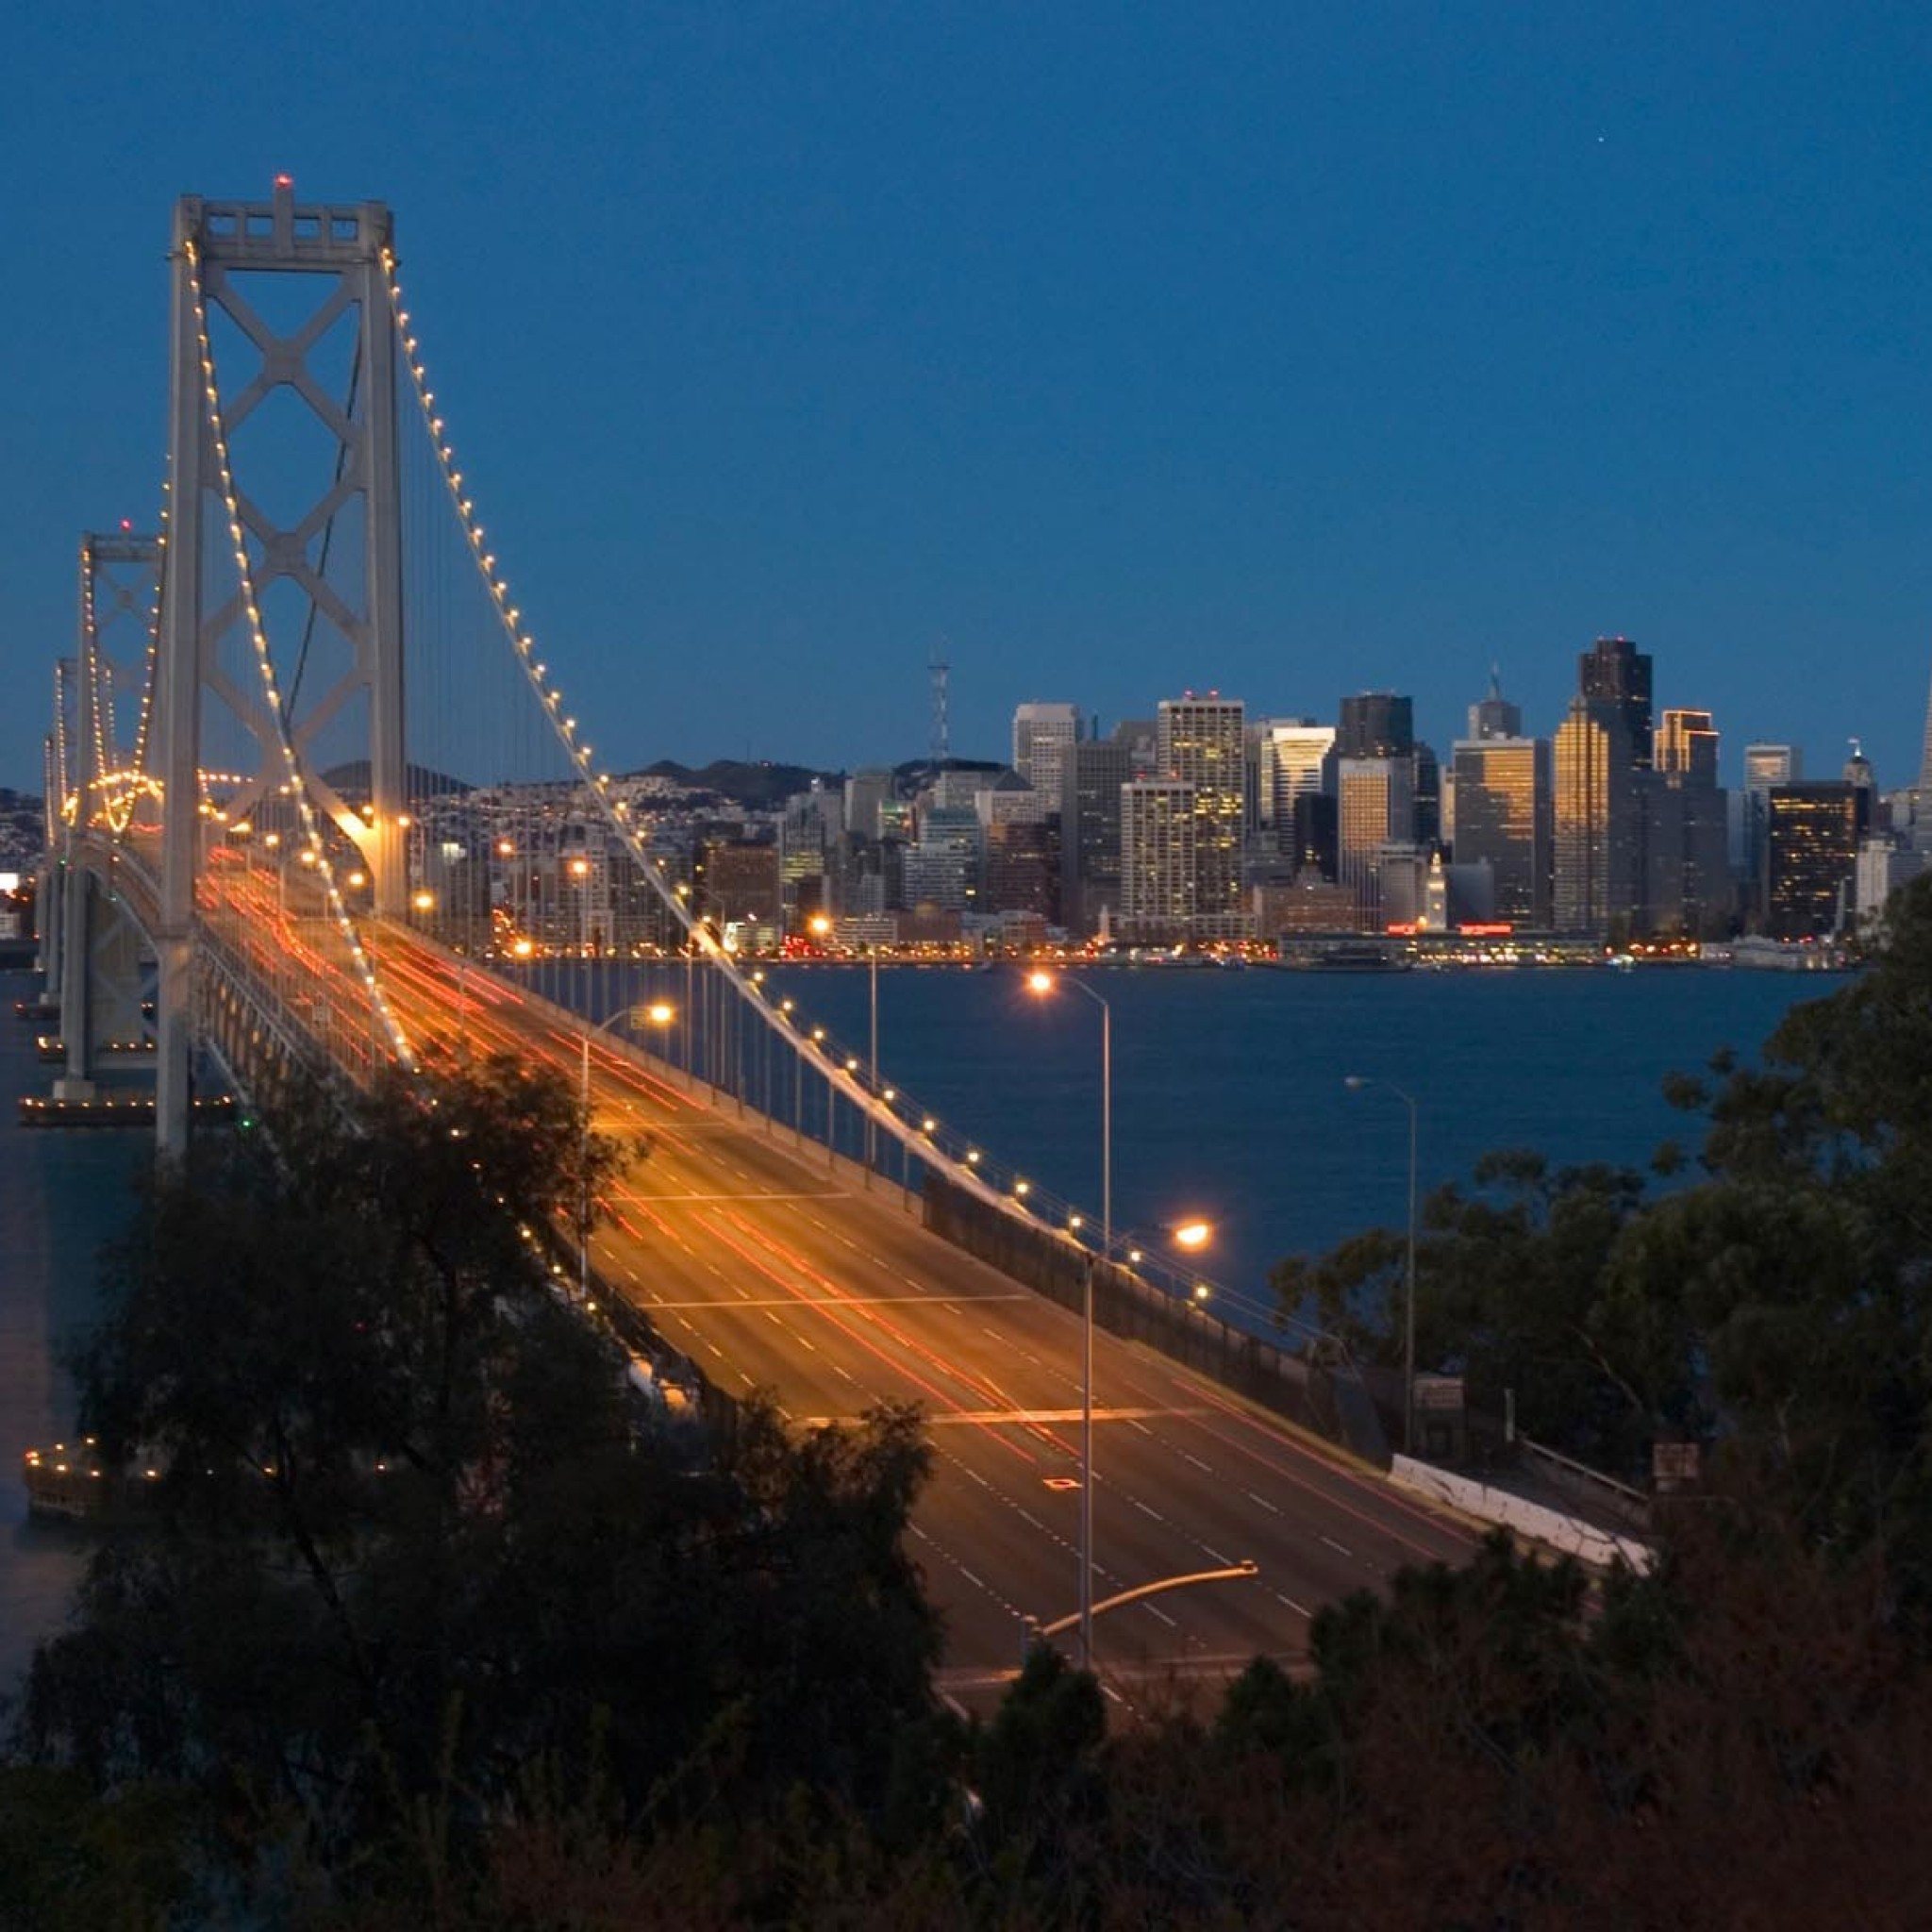 san-francisco-oakland-bay-bridge-landscape-2048x2048